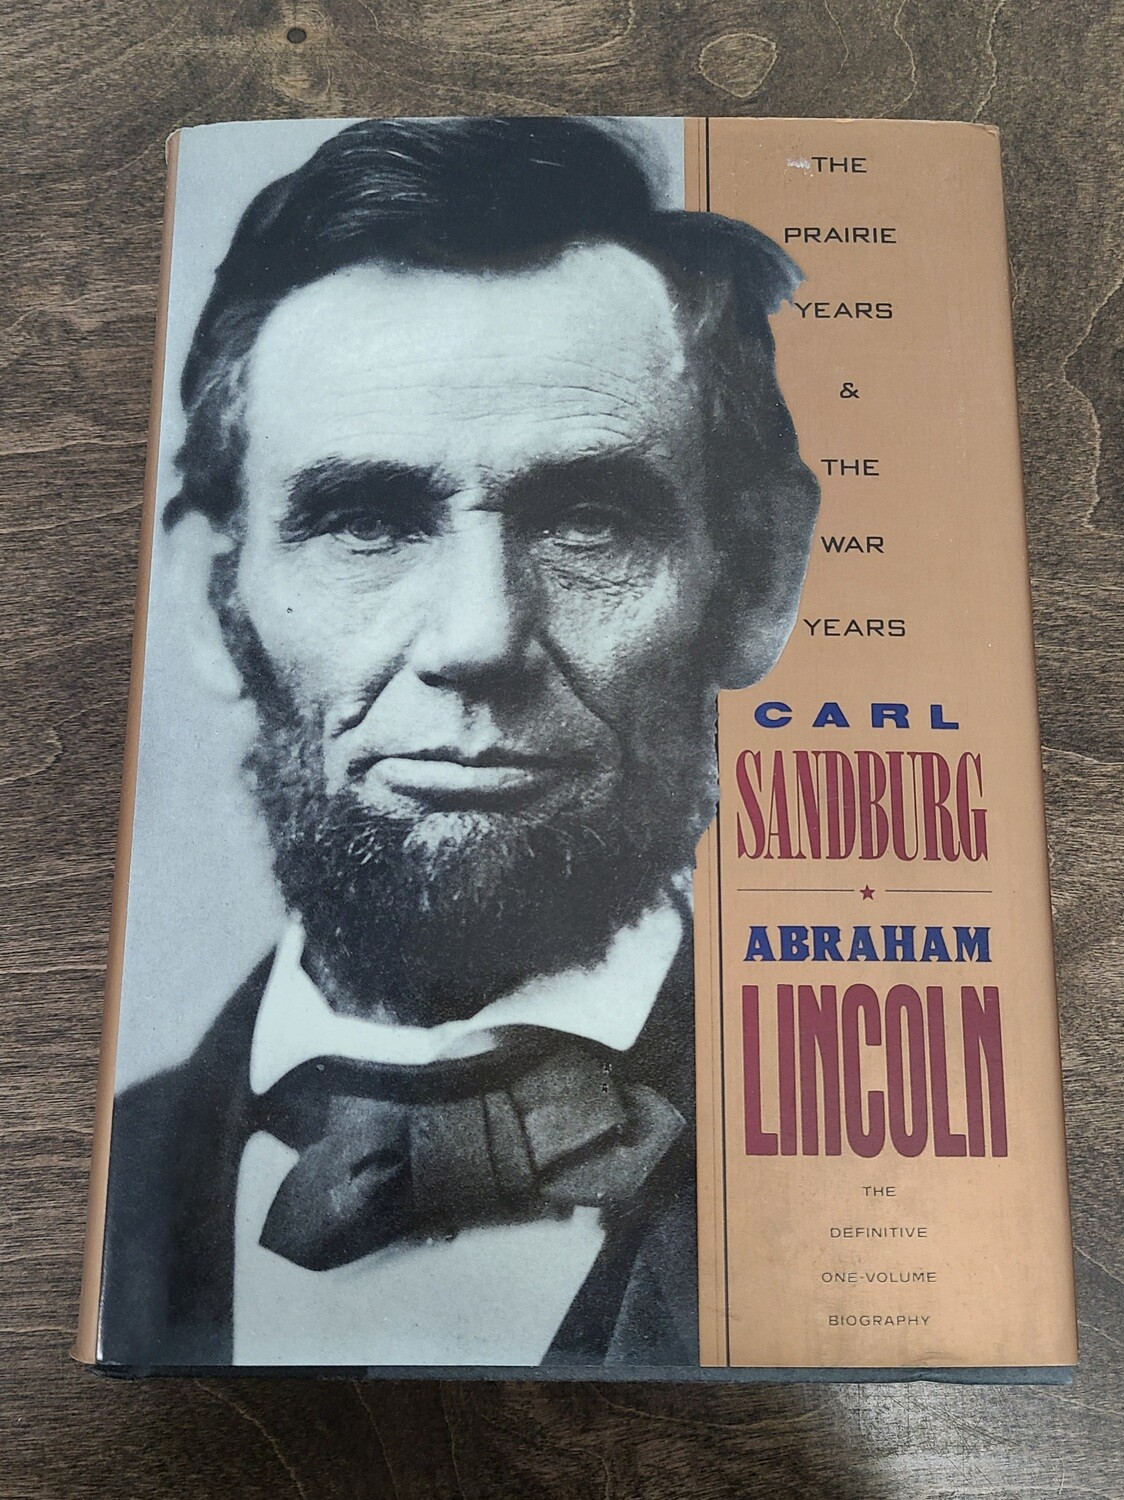 Abraham Lincoln: The Prairie Years and The War Years by Carl Sandburg